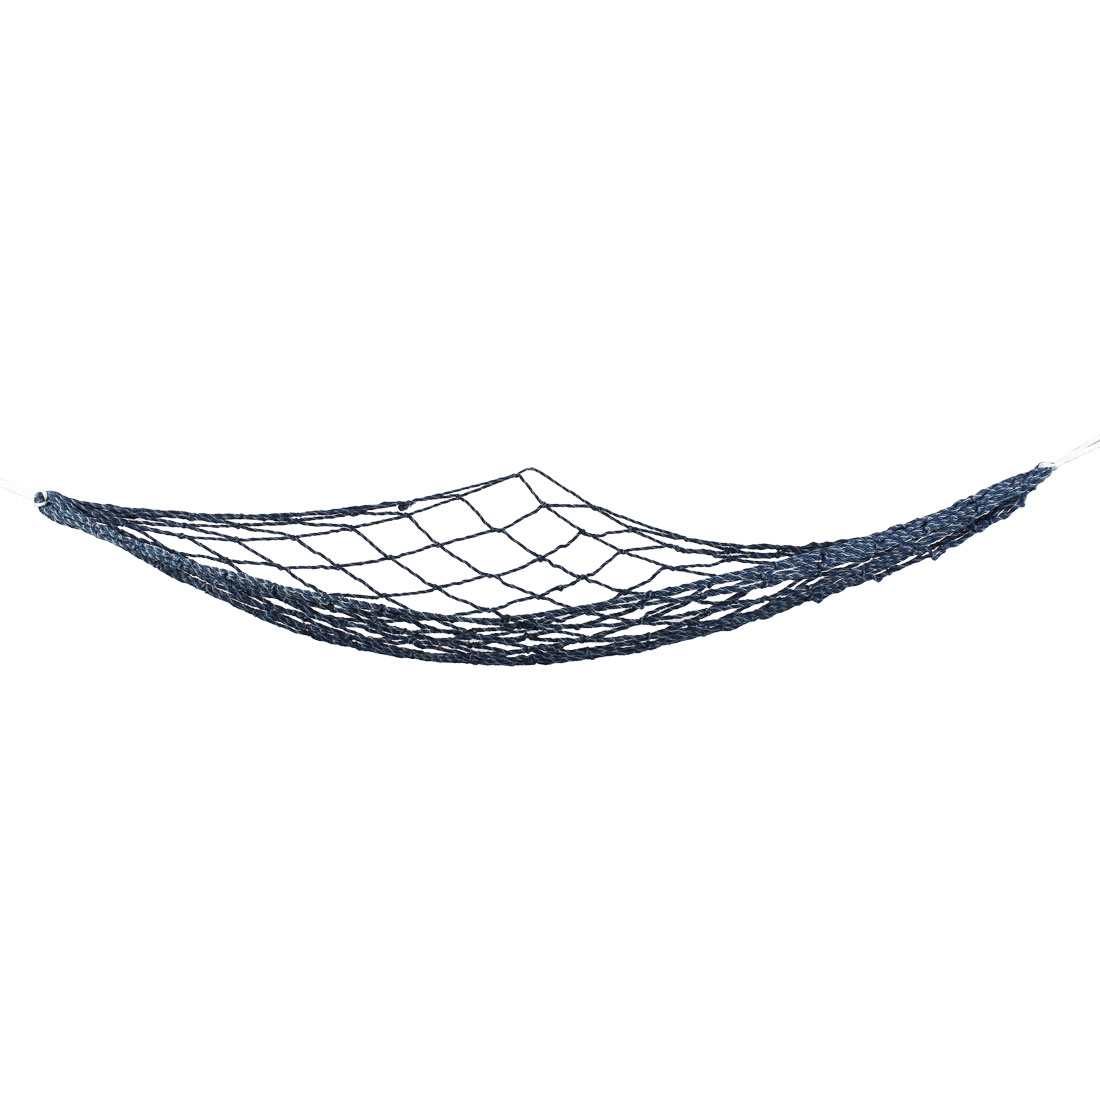 Outdoor Blue White Nylon Twisted Meshy Sleeping Bed Hammock 1.8M x 1.7M